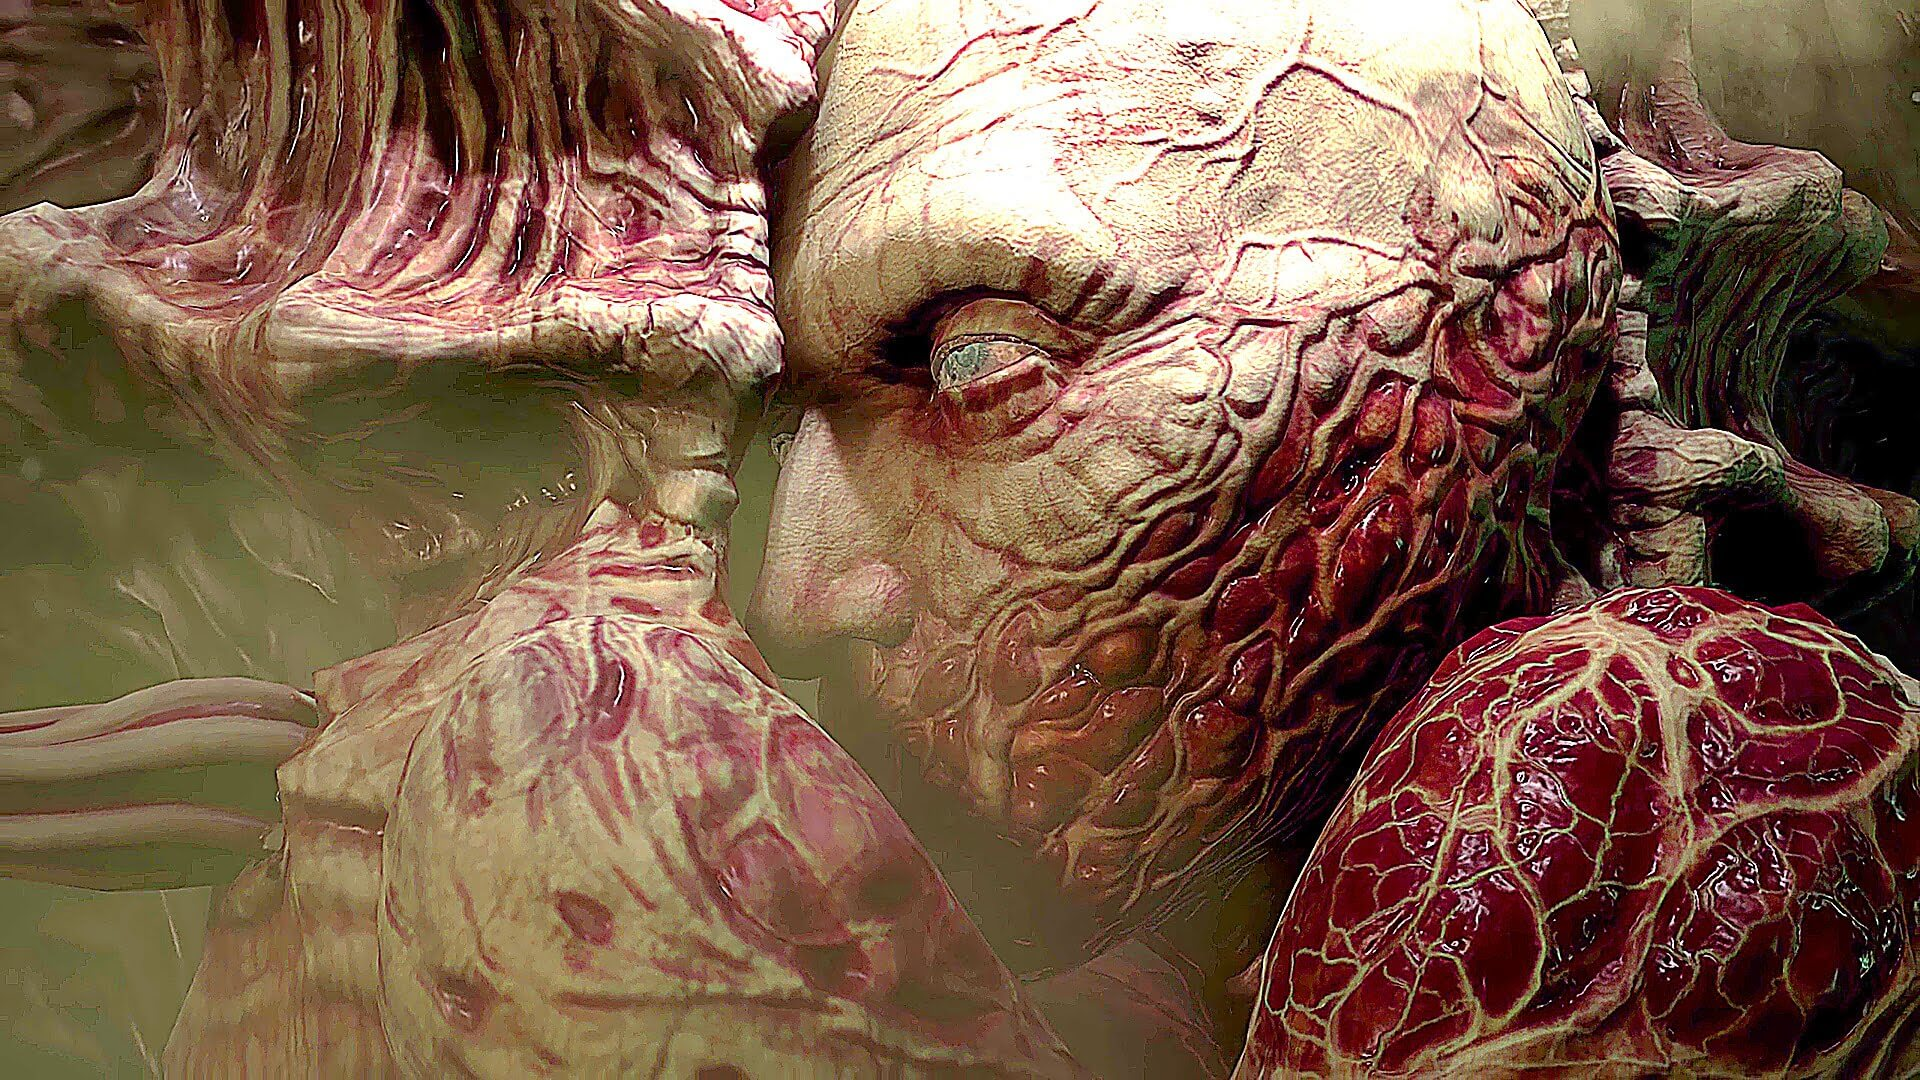 scorn game4 1 - Scorn Could Be the Most Disturbing Game of 2017